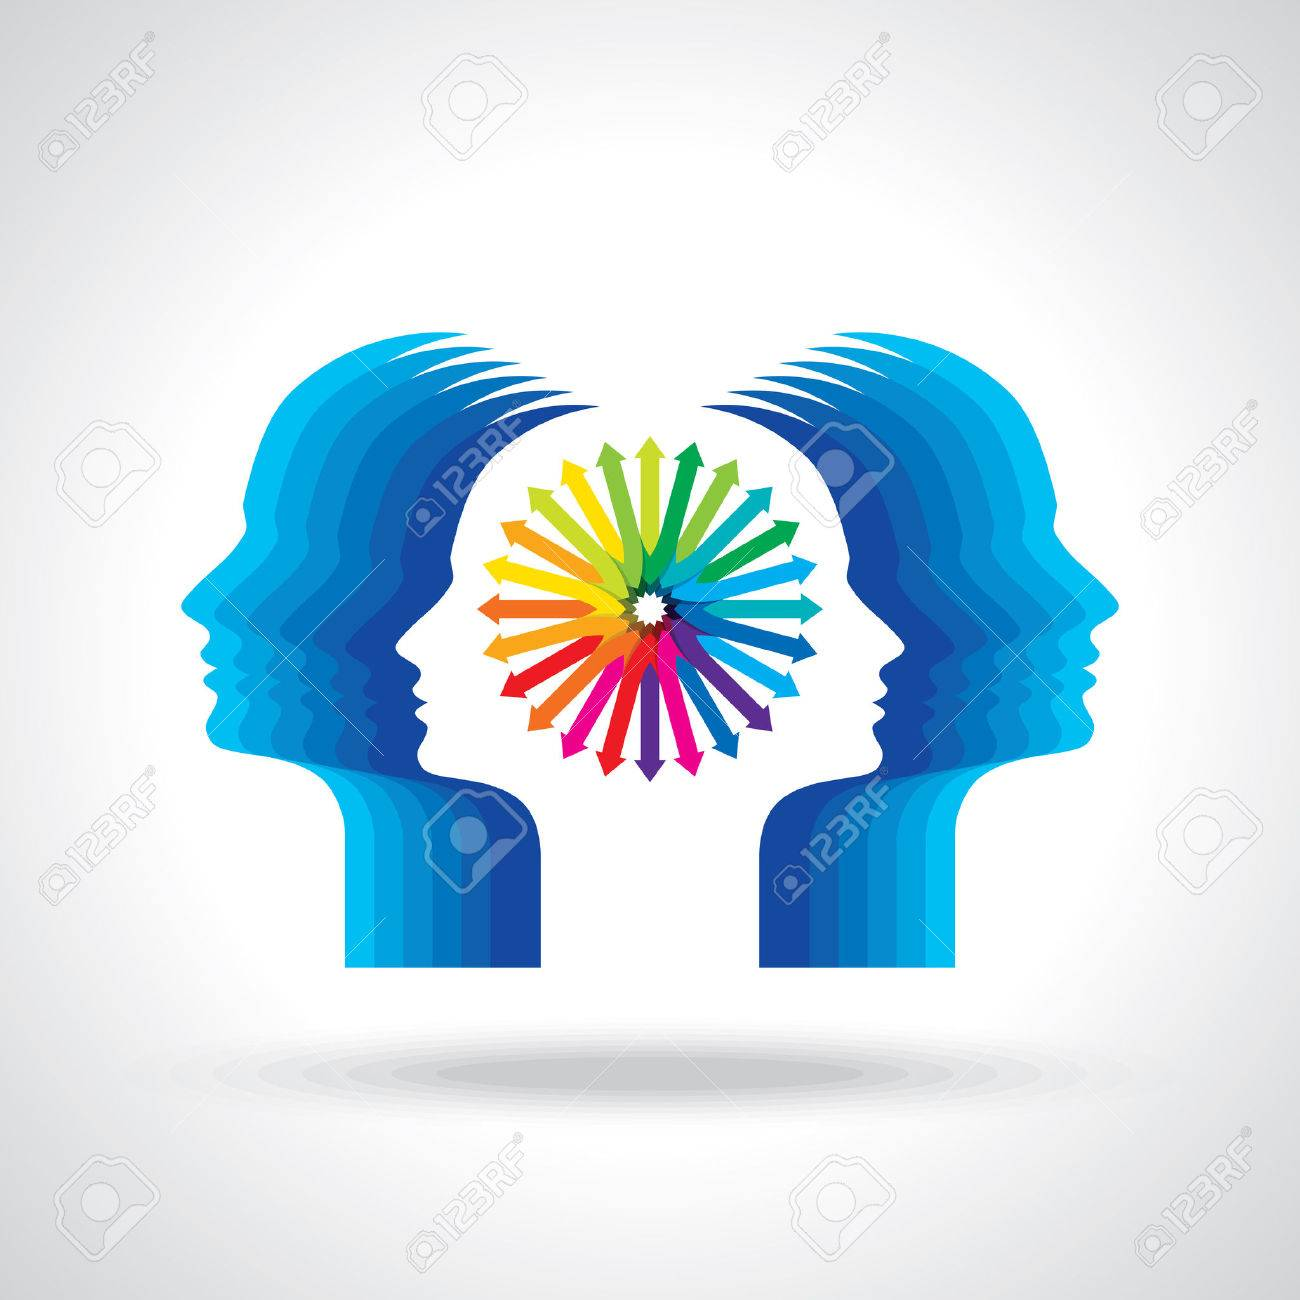 Thoughts and options illustration of head with arrows Standard-Bild - 37110621